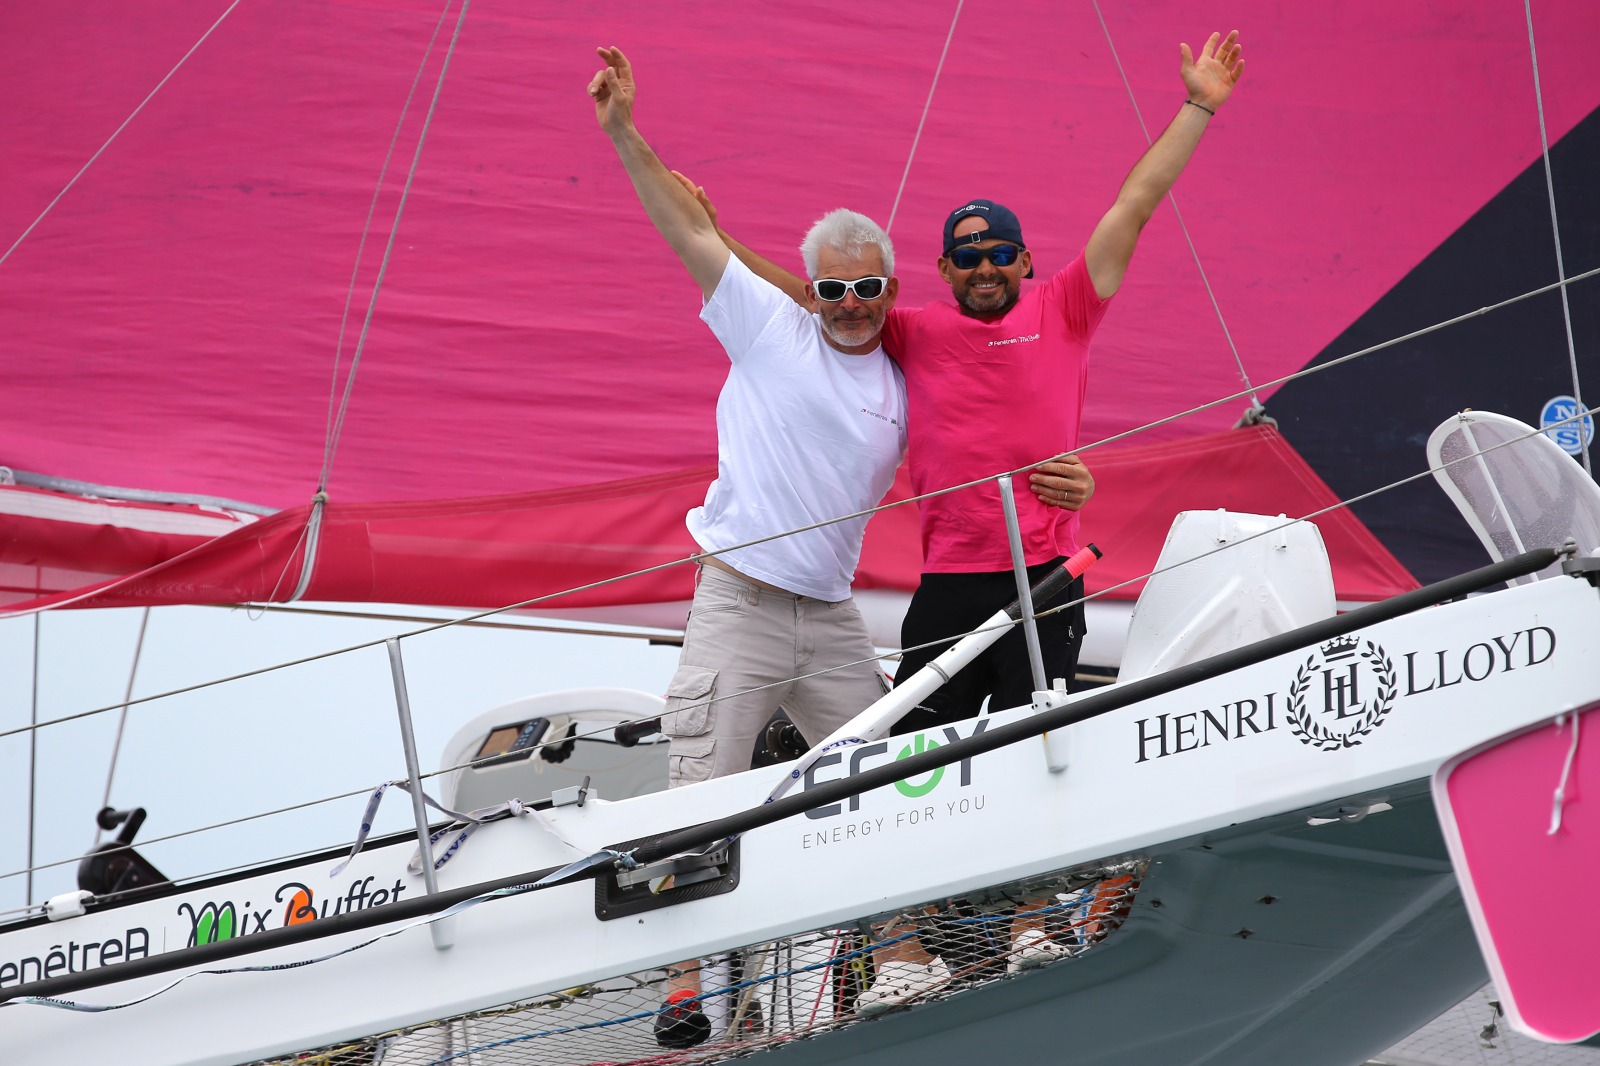 News record breaking arkema wins transat jacque vabre for Fenetrea mix buffet